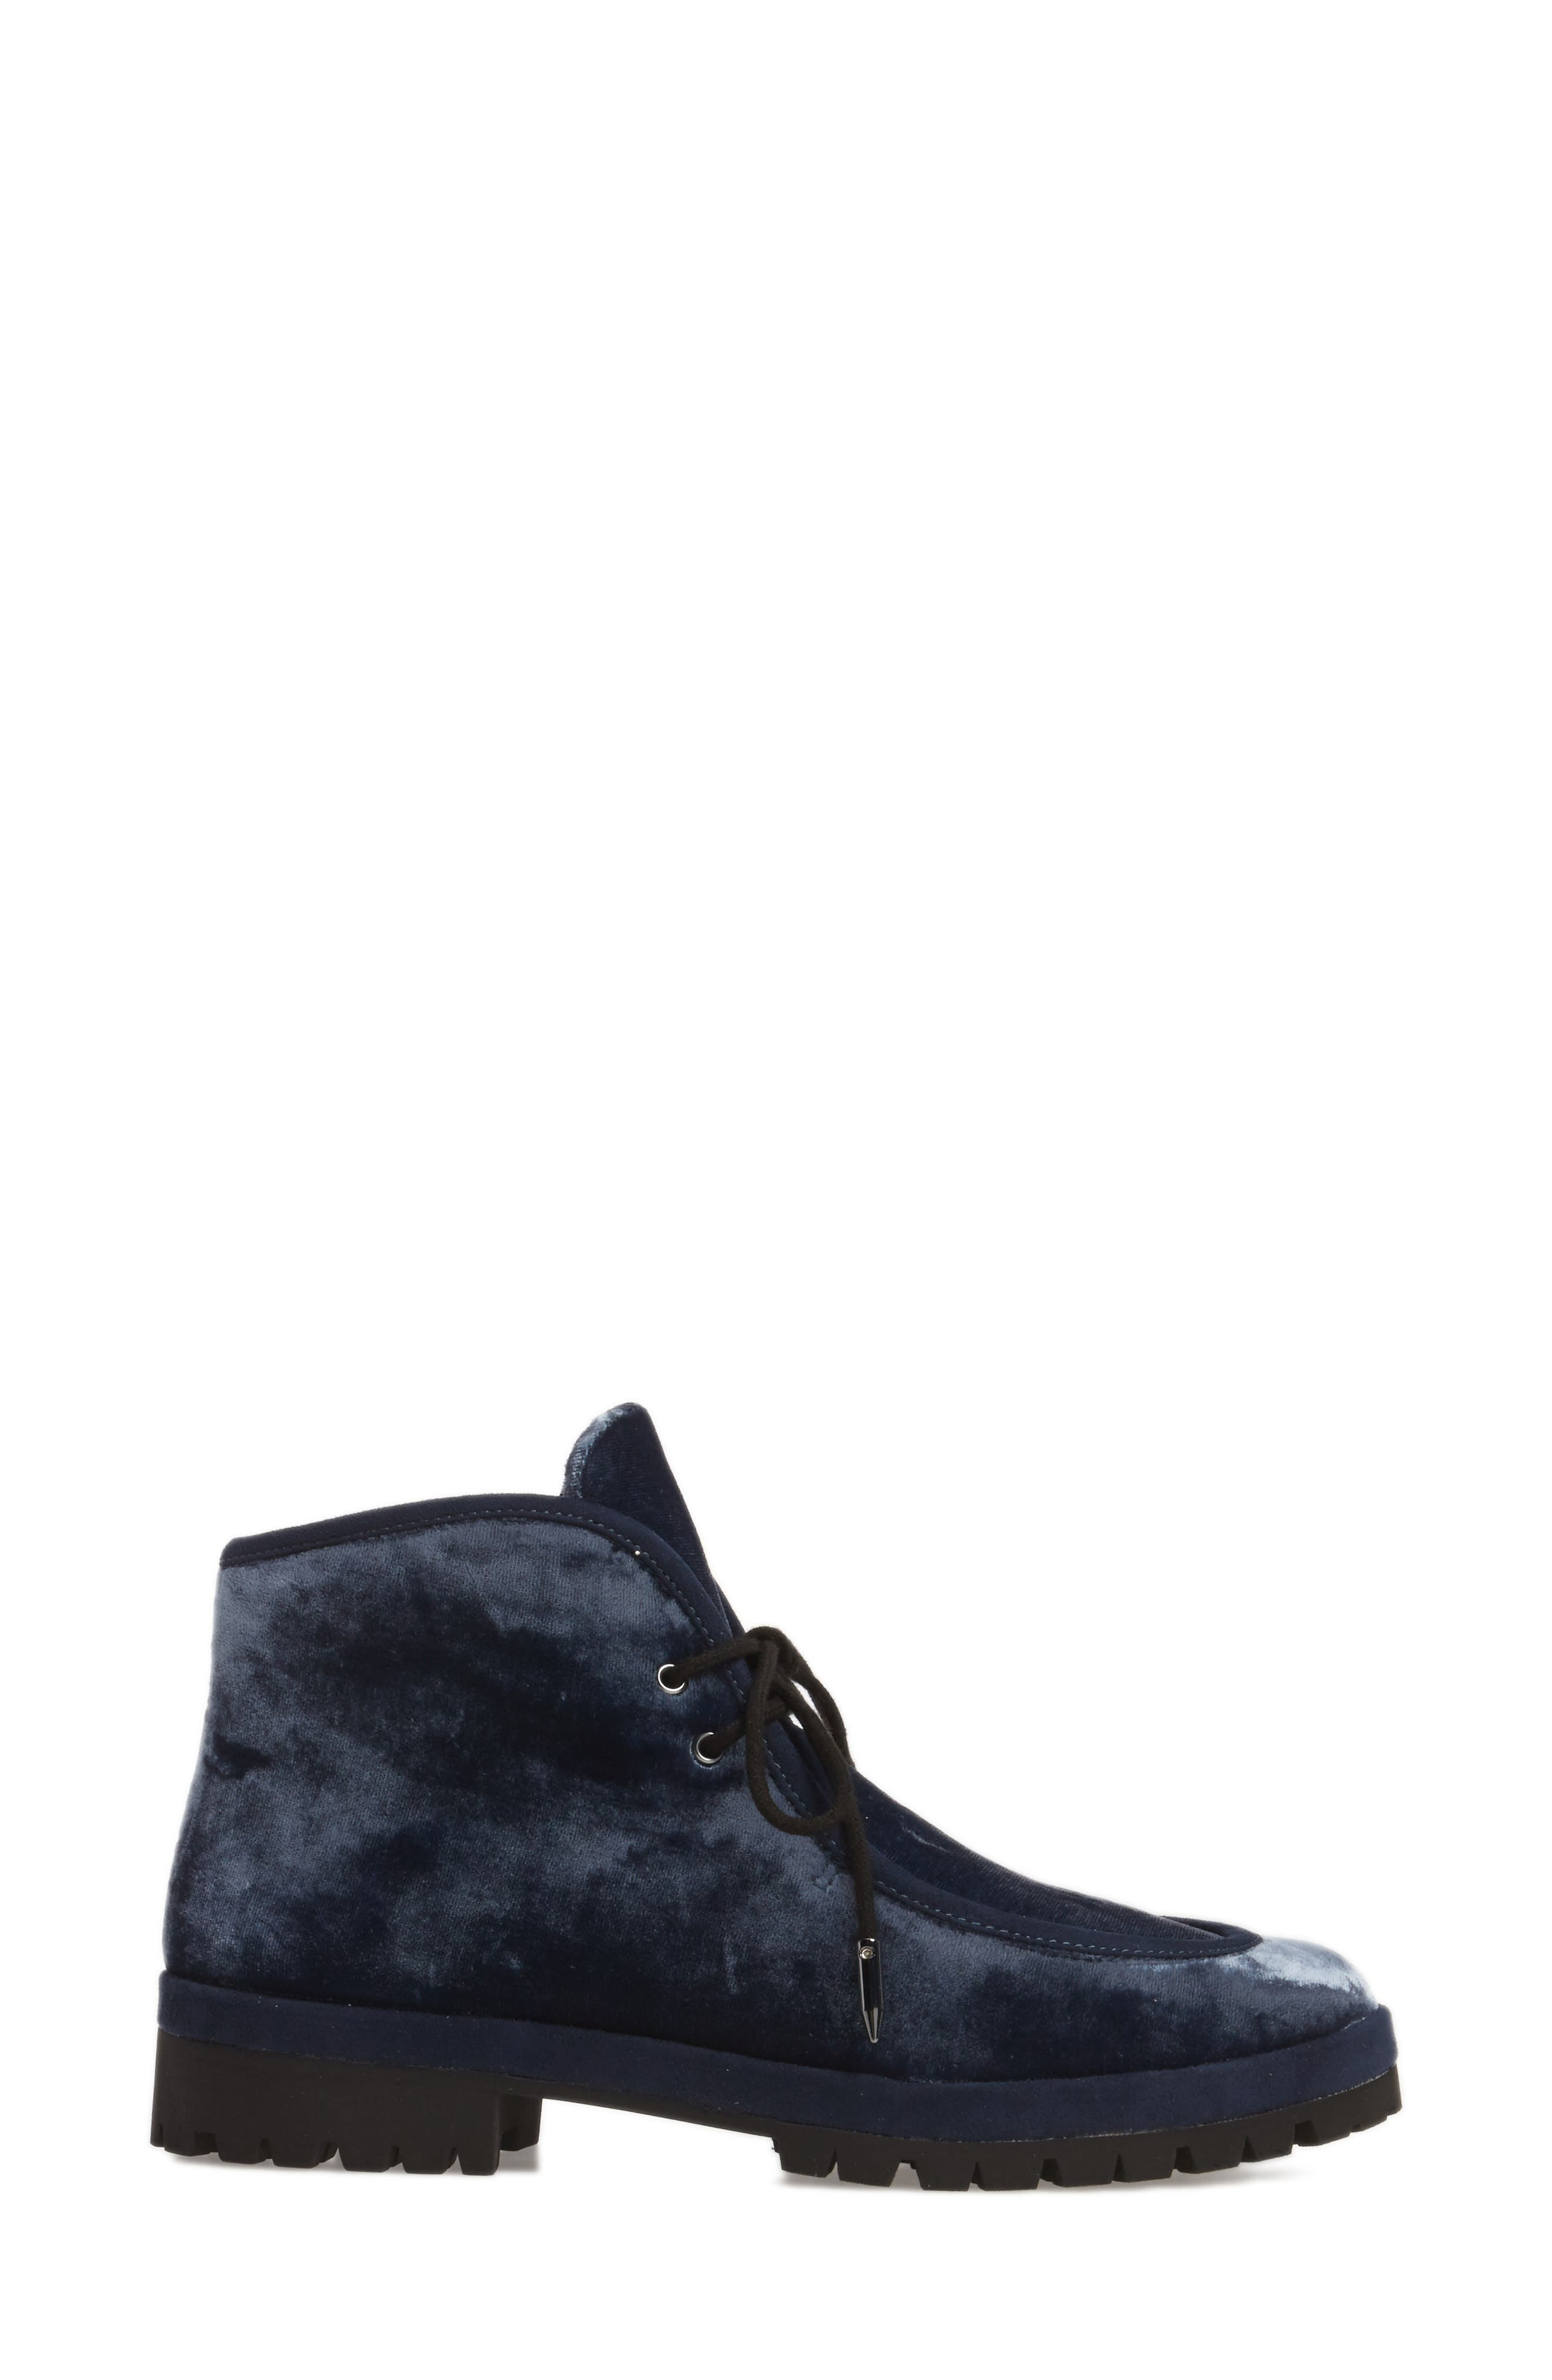 Demi Lace-Up Bootie,                             Alternate thumbnail 3, color,                             Midnight Navy Velvet